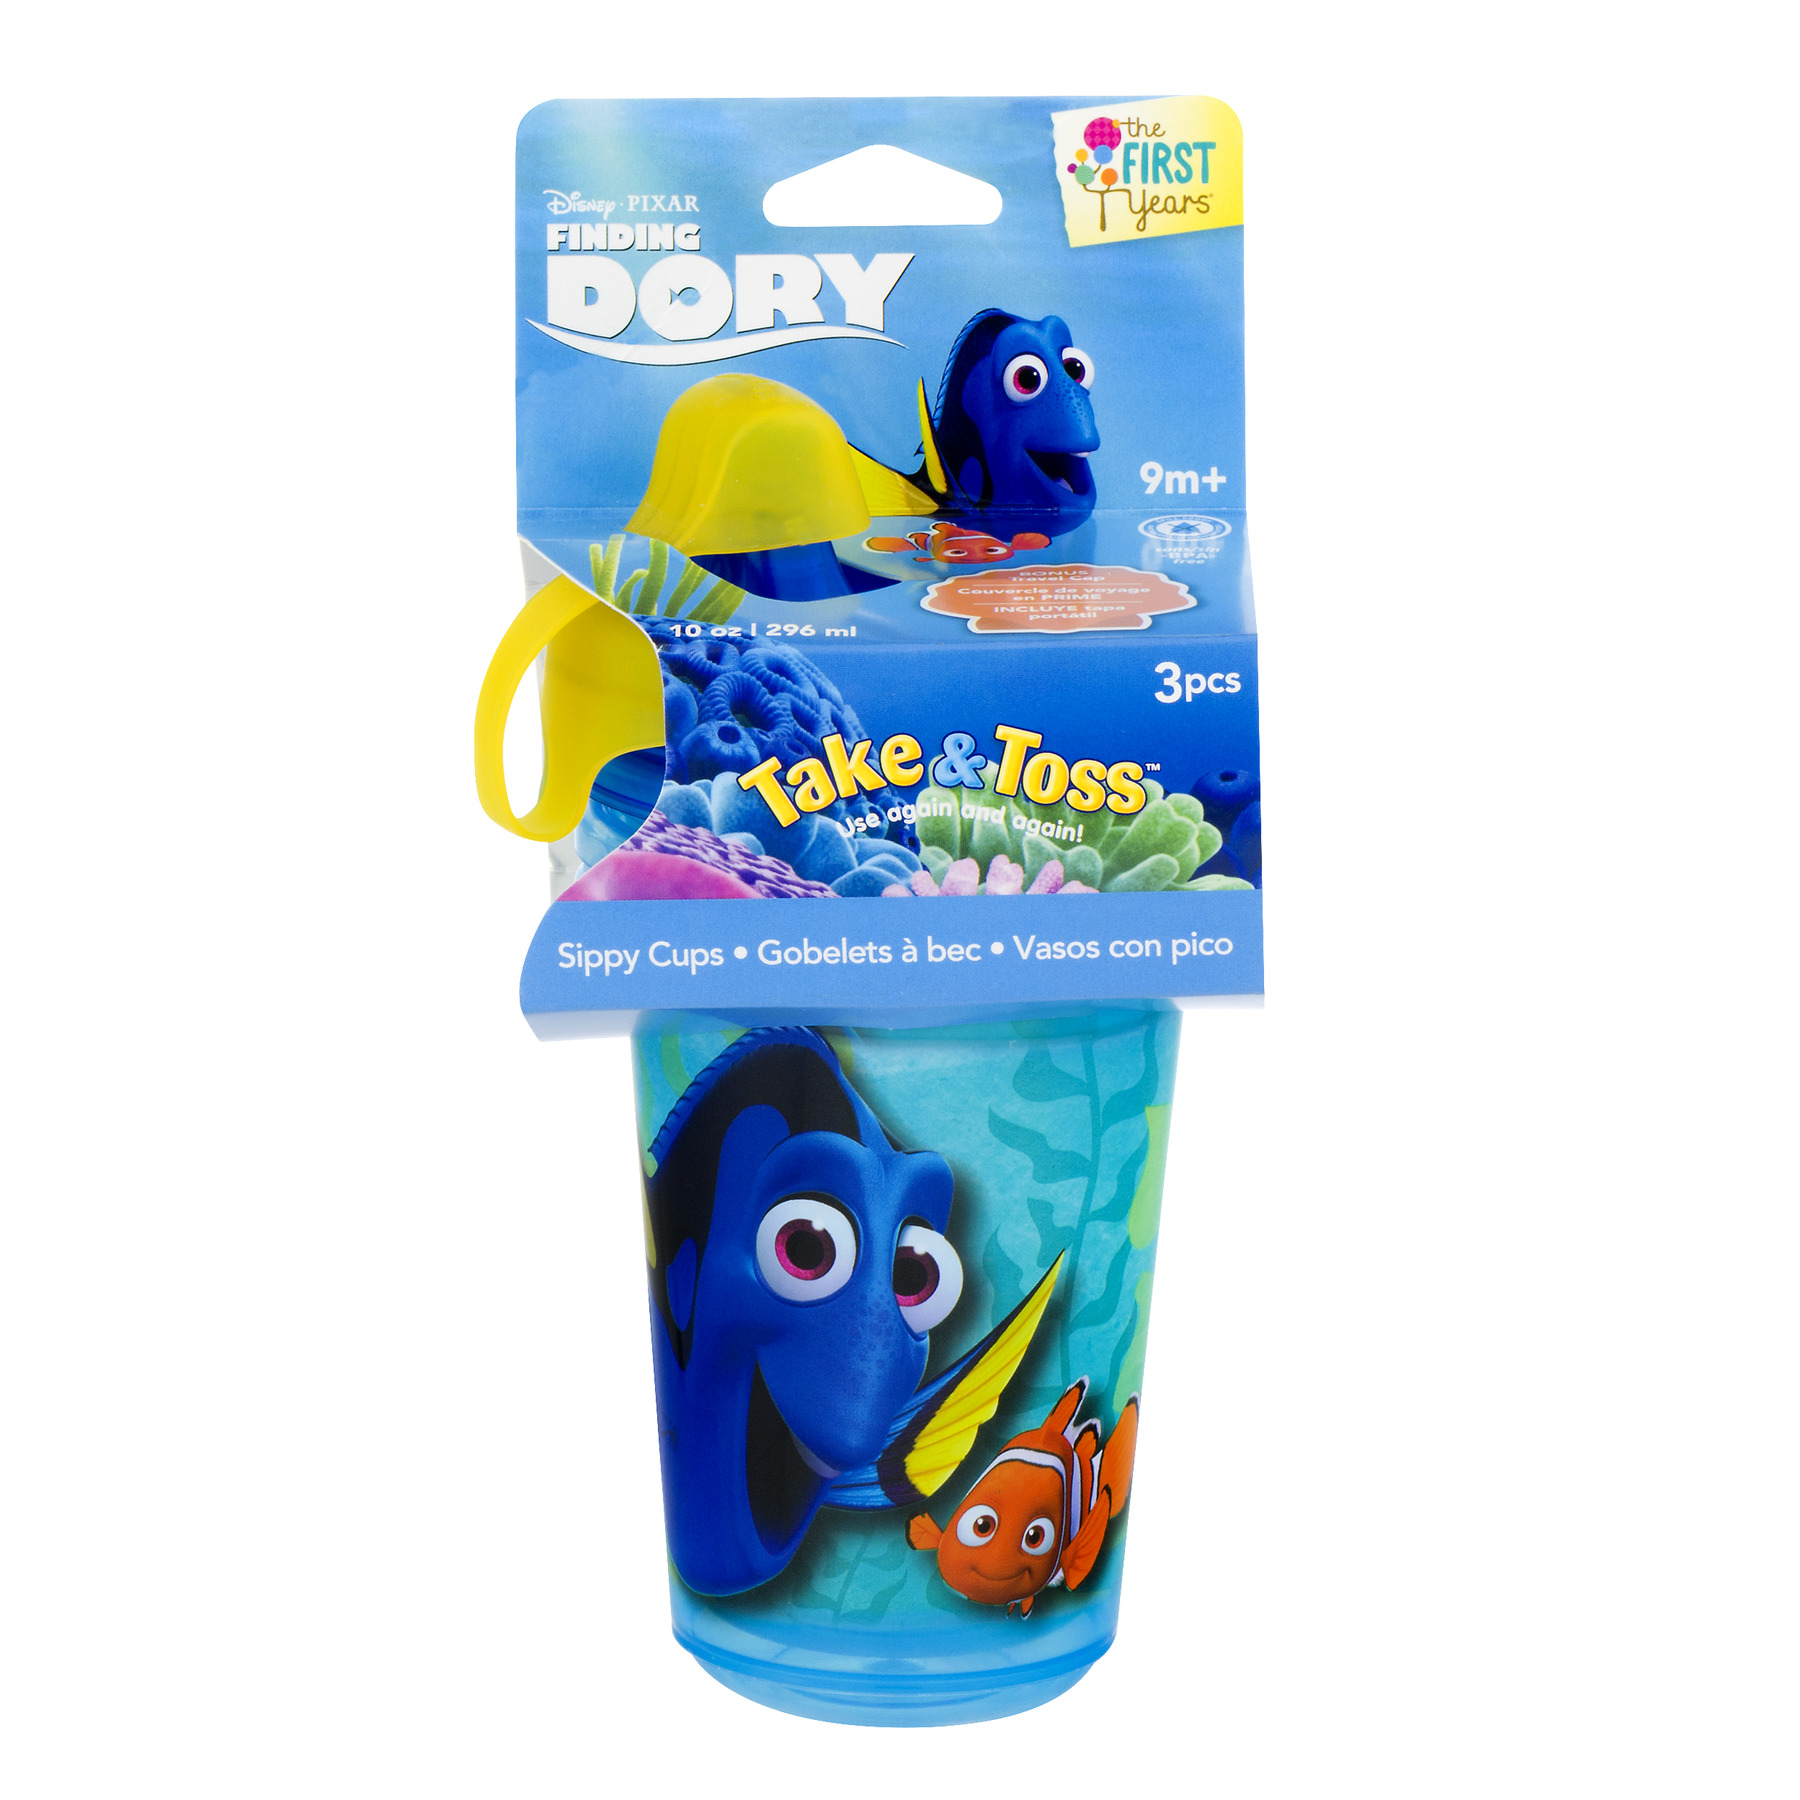 The First Years Disney Pixar Finding Dory Sippy Cup 9m+  - 3 PCS, 3.0 PIECE(S)